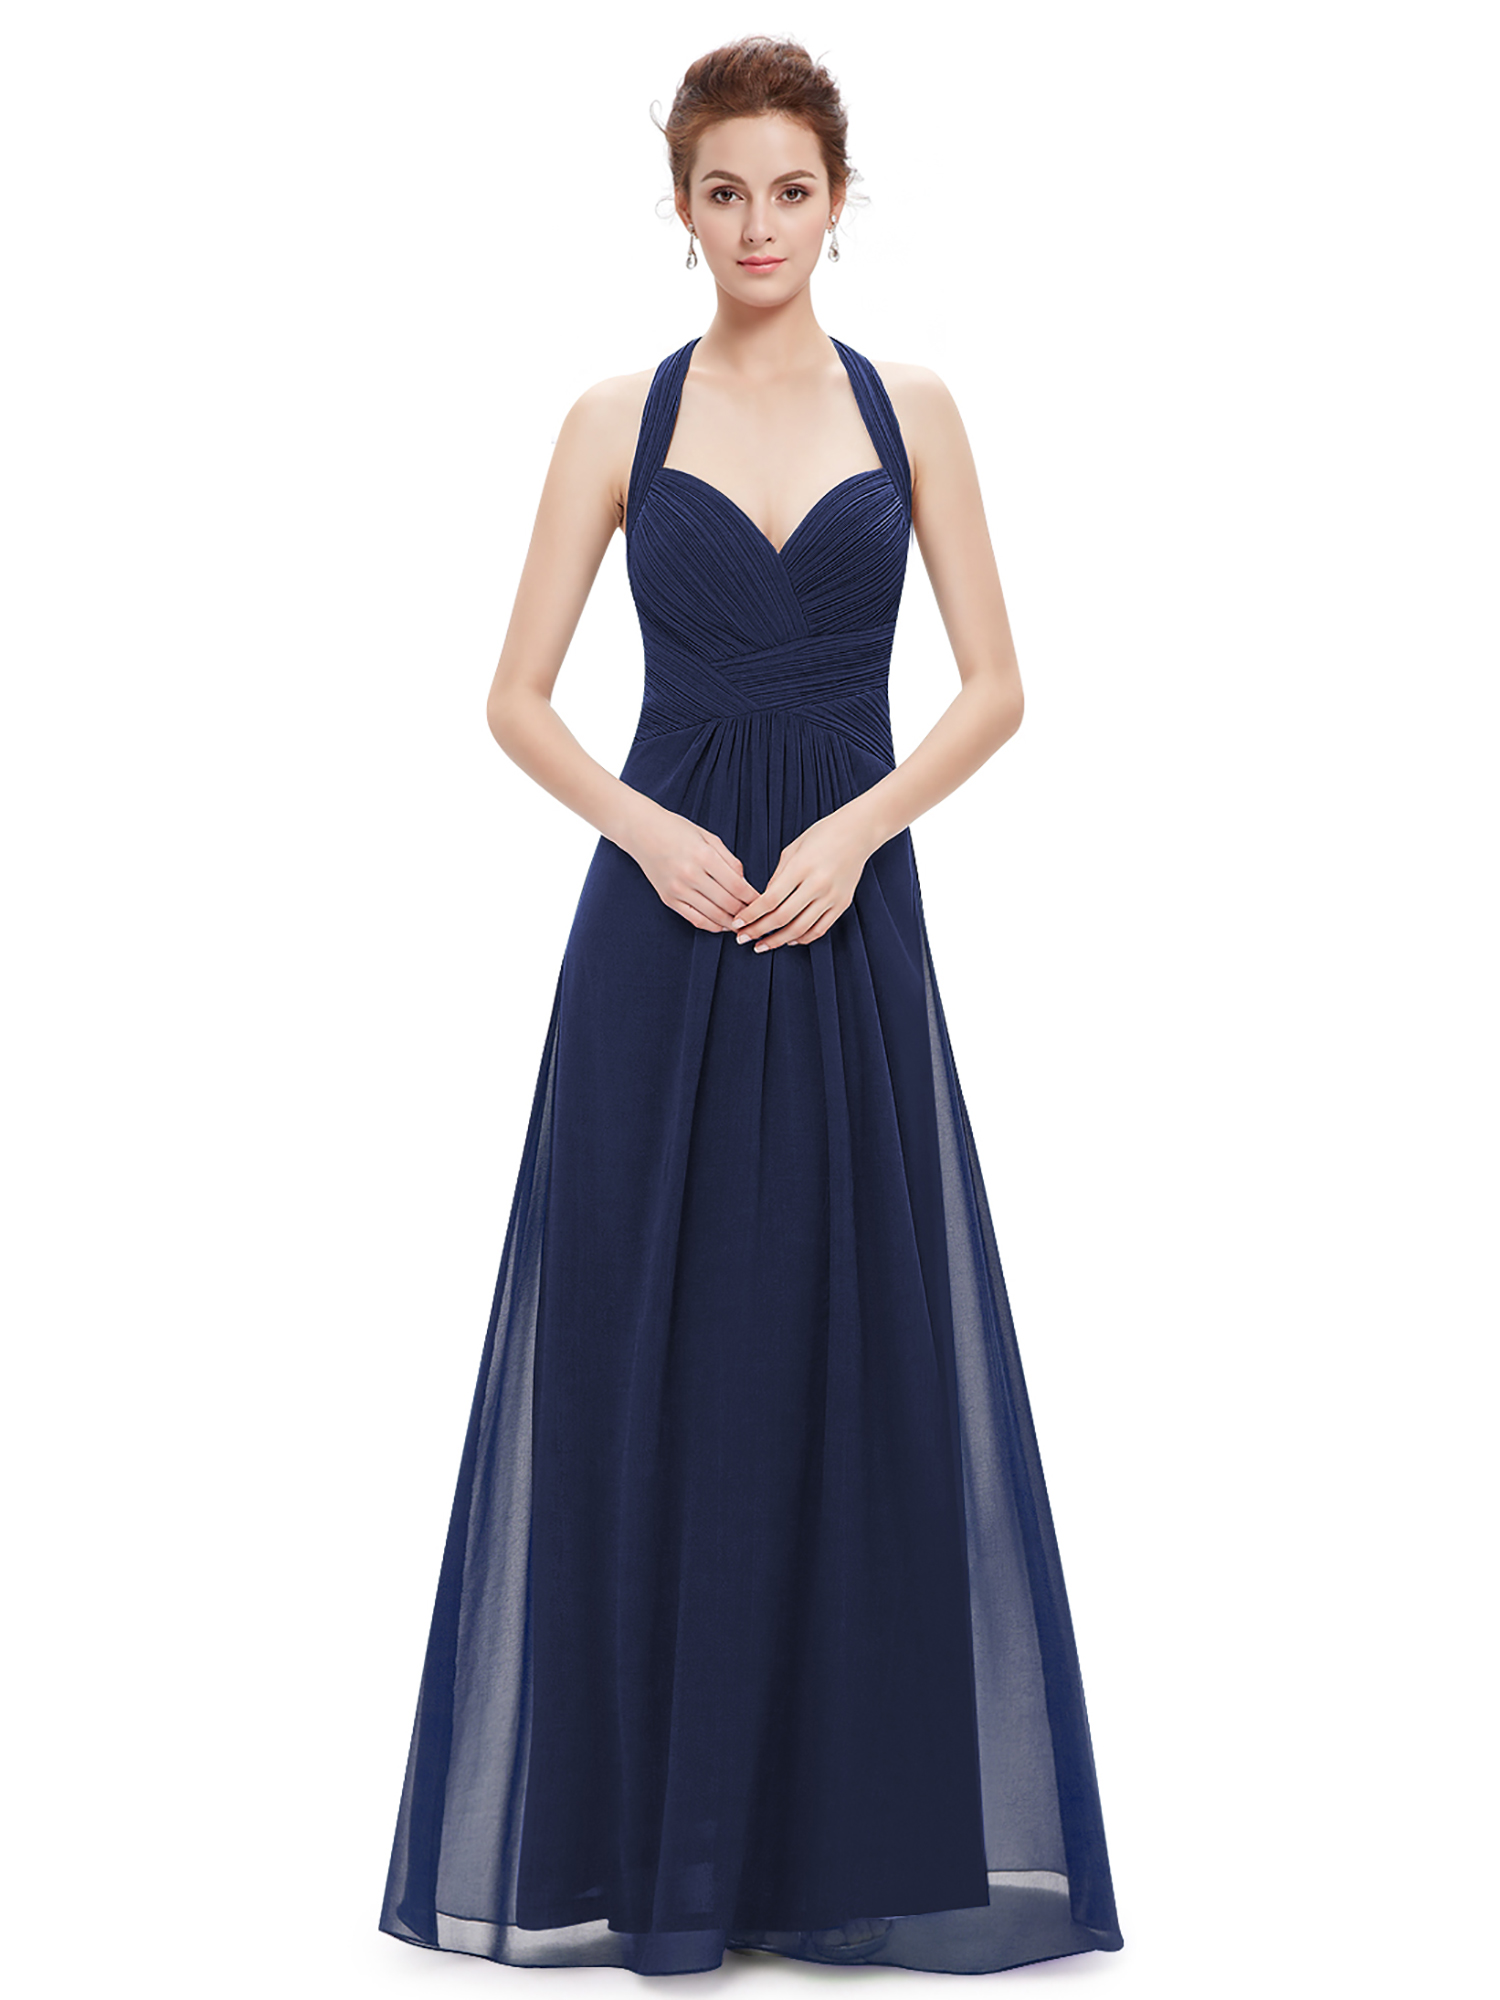 Women's Maxi Halter Bridesmaid Dress Evening Wedding Prom ...